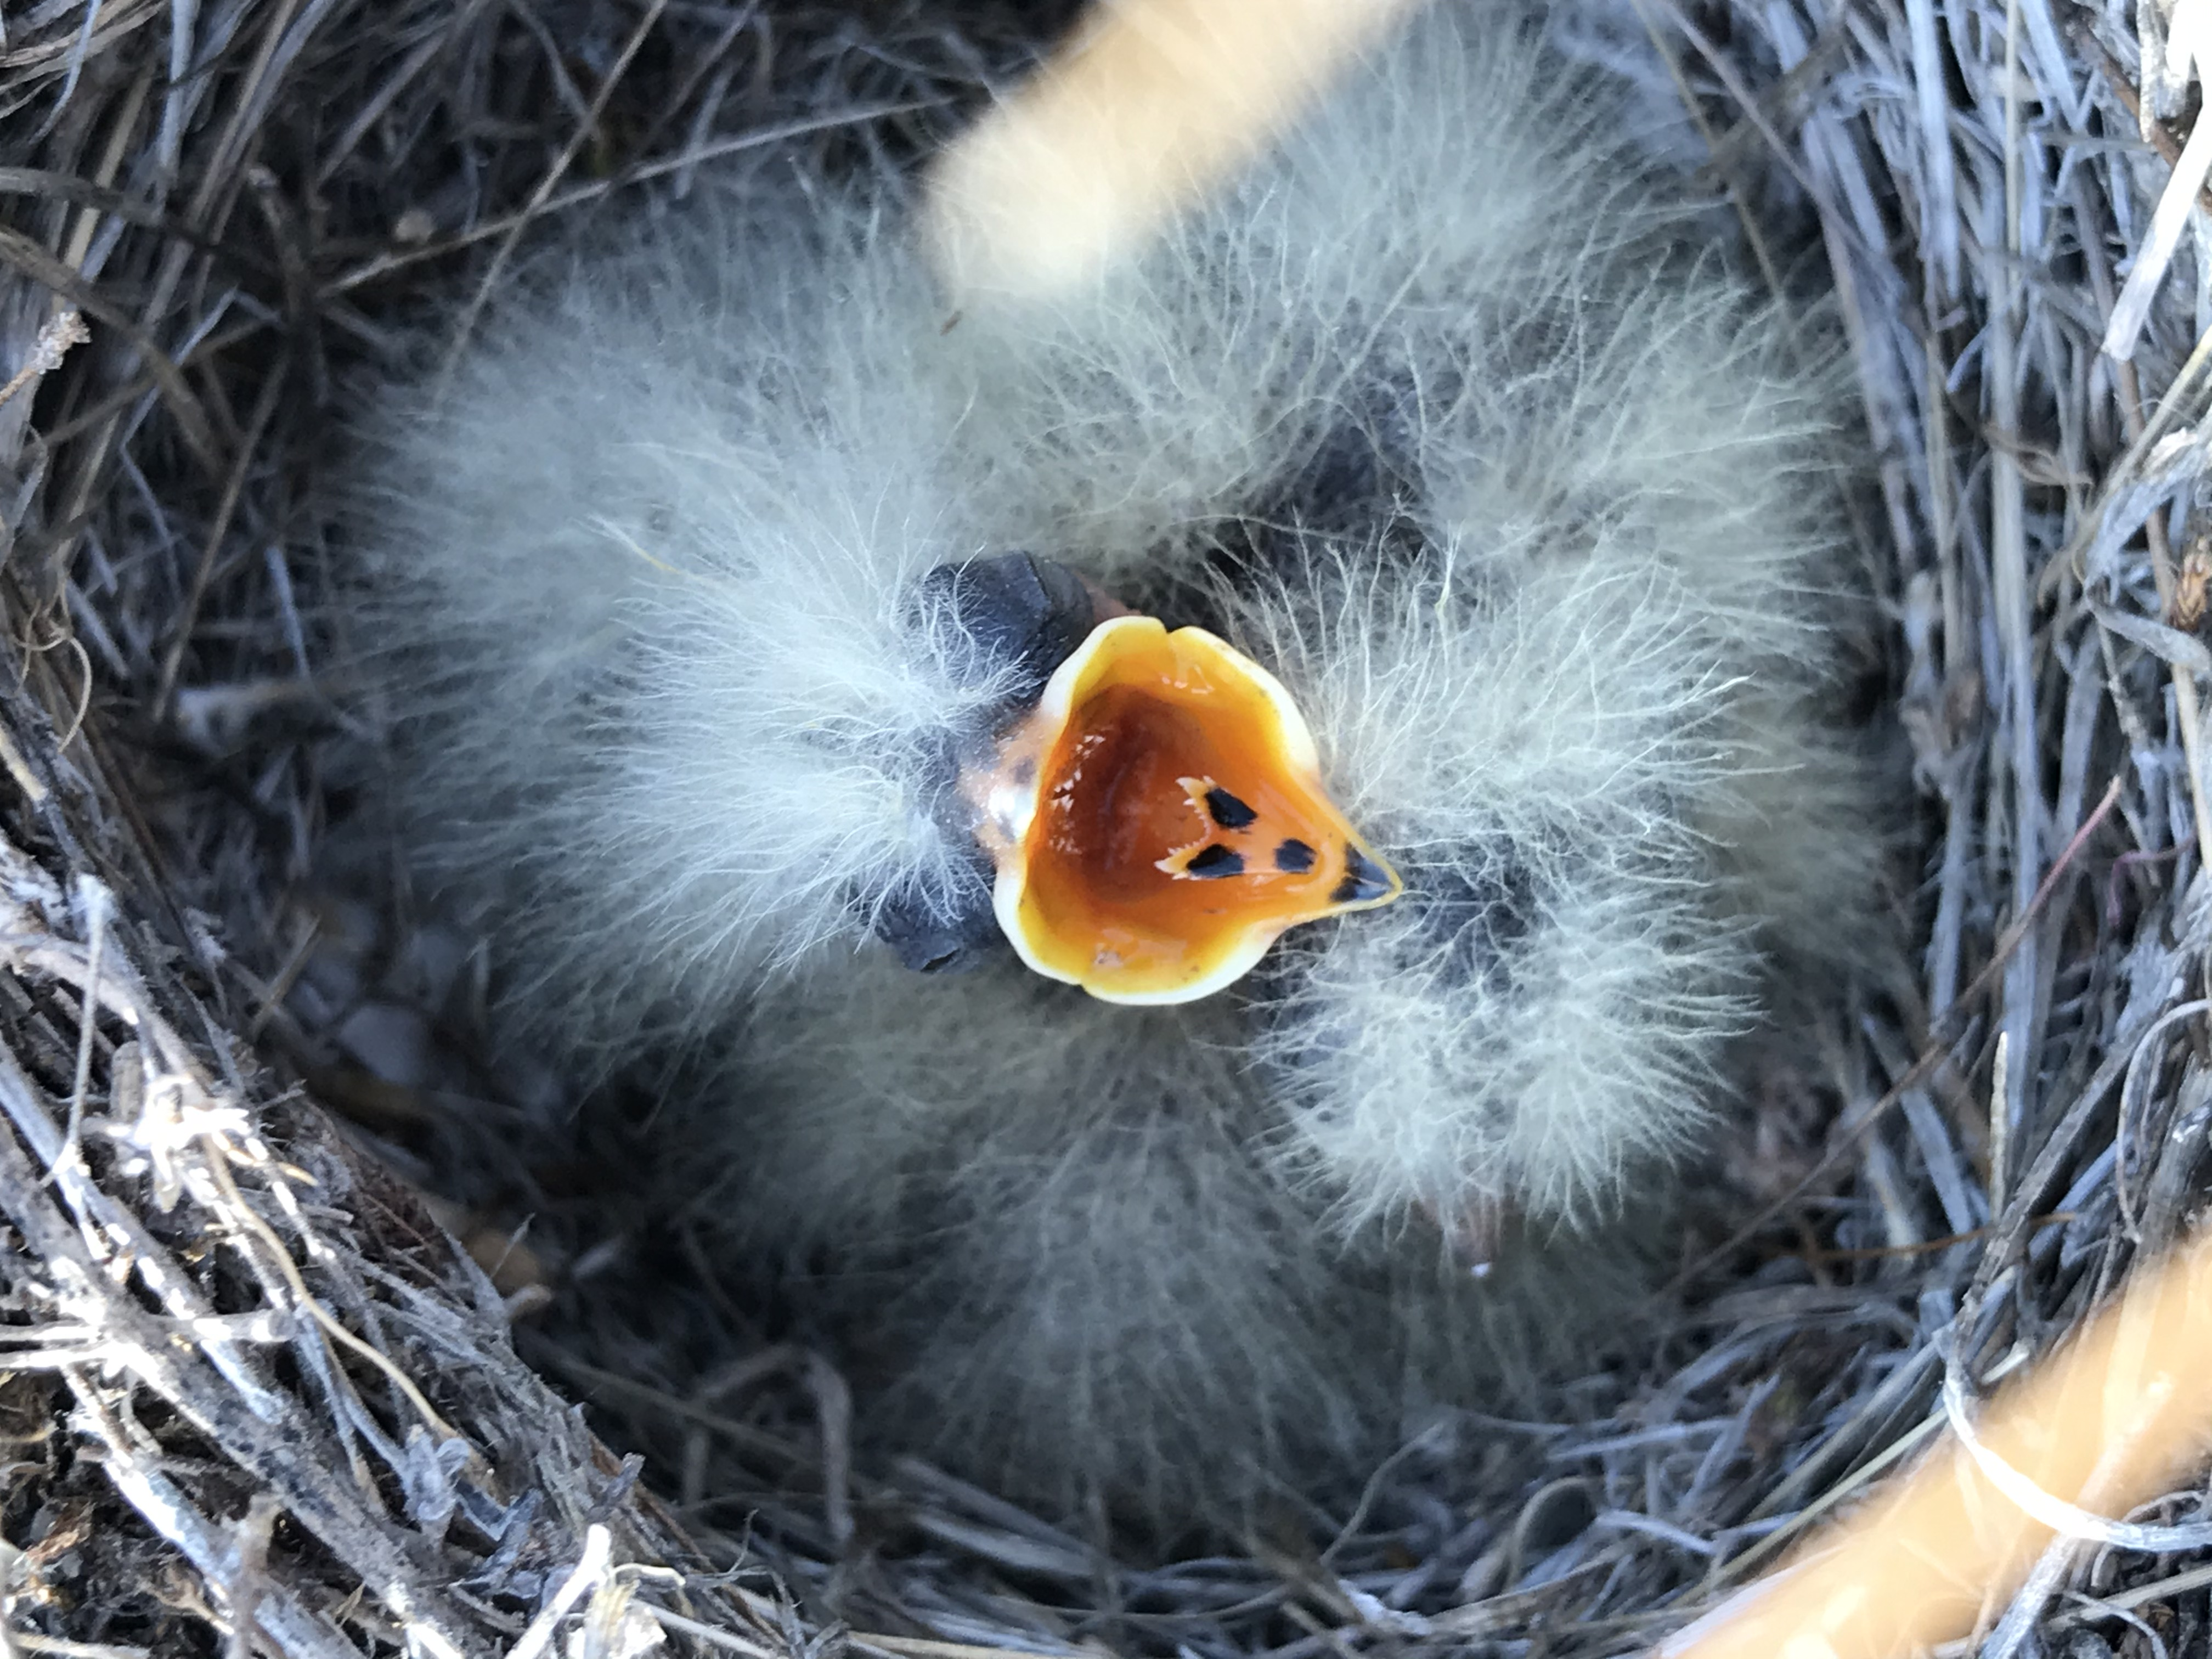 a closeup view of a nest with very downy chicks. They are so fluffy that it's hard to make out individual chicks, but one is facing the camera with a bright yellow mouth wide open begging for food